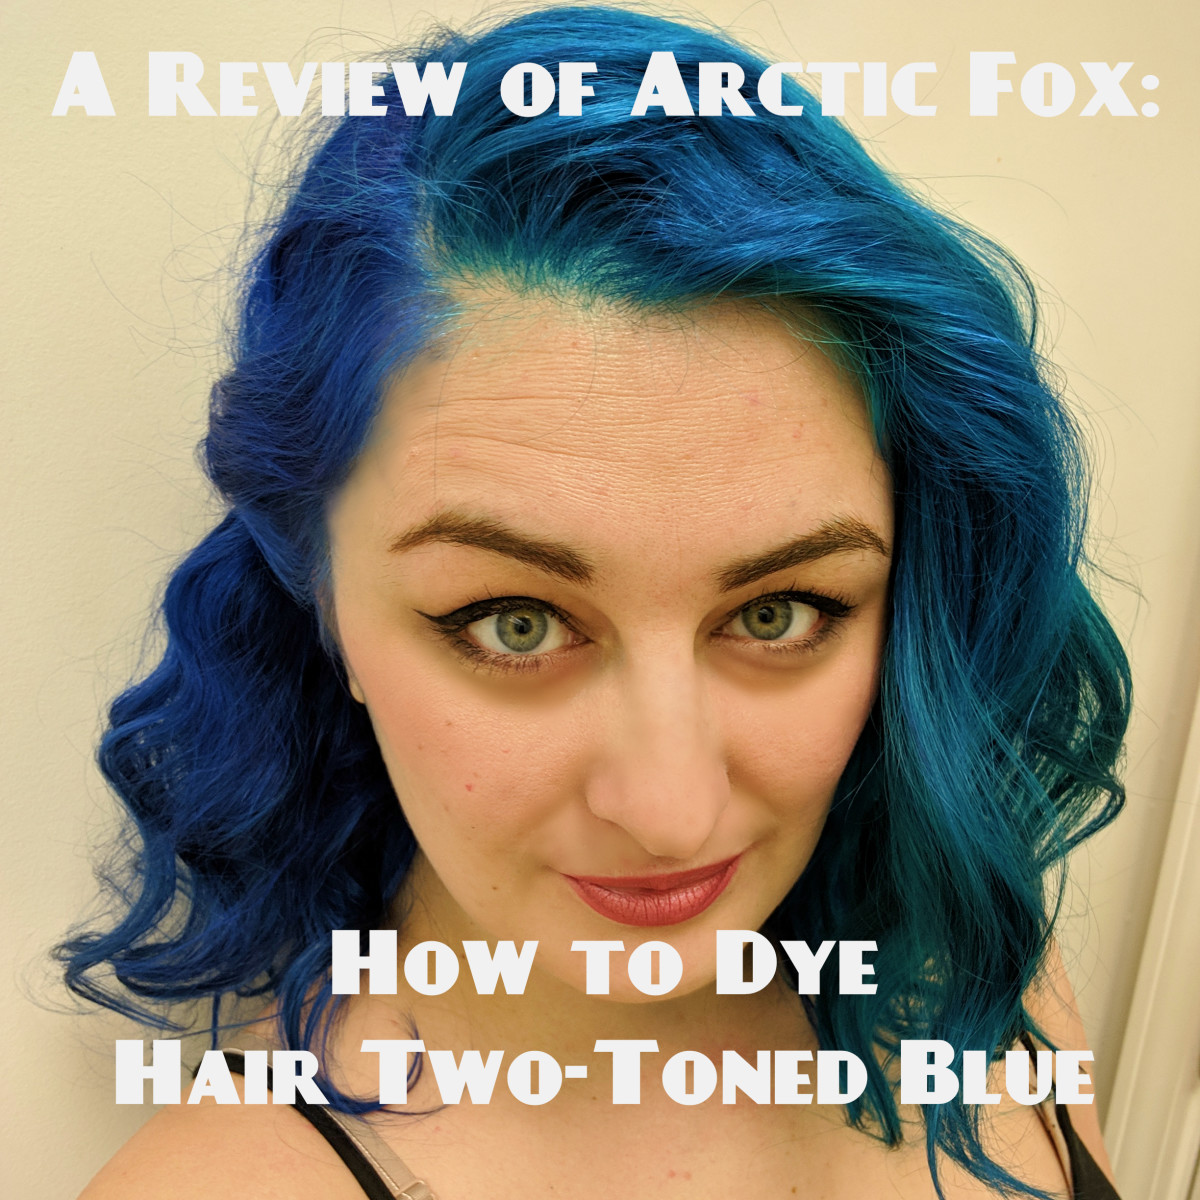 How to Dye Your Hair Two-Toned Blue: A Review of Arctic Fox Poseidon & Aquamarine